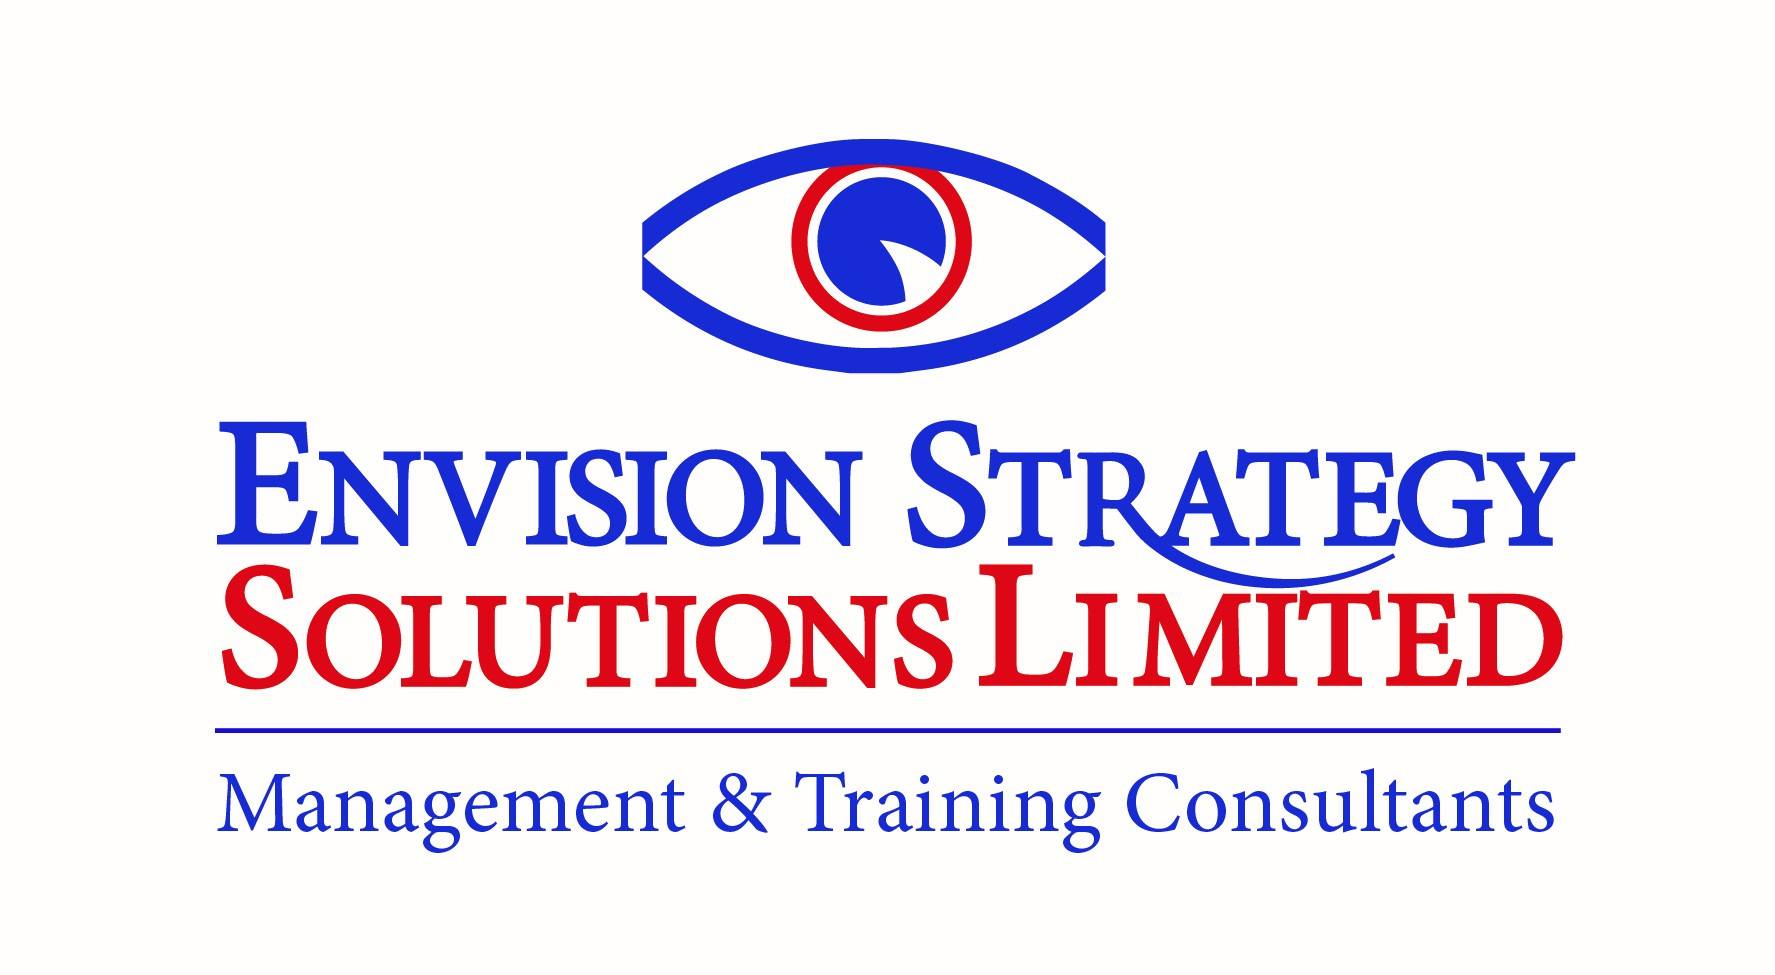 Envision Strategy